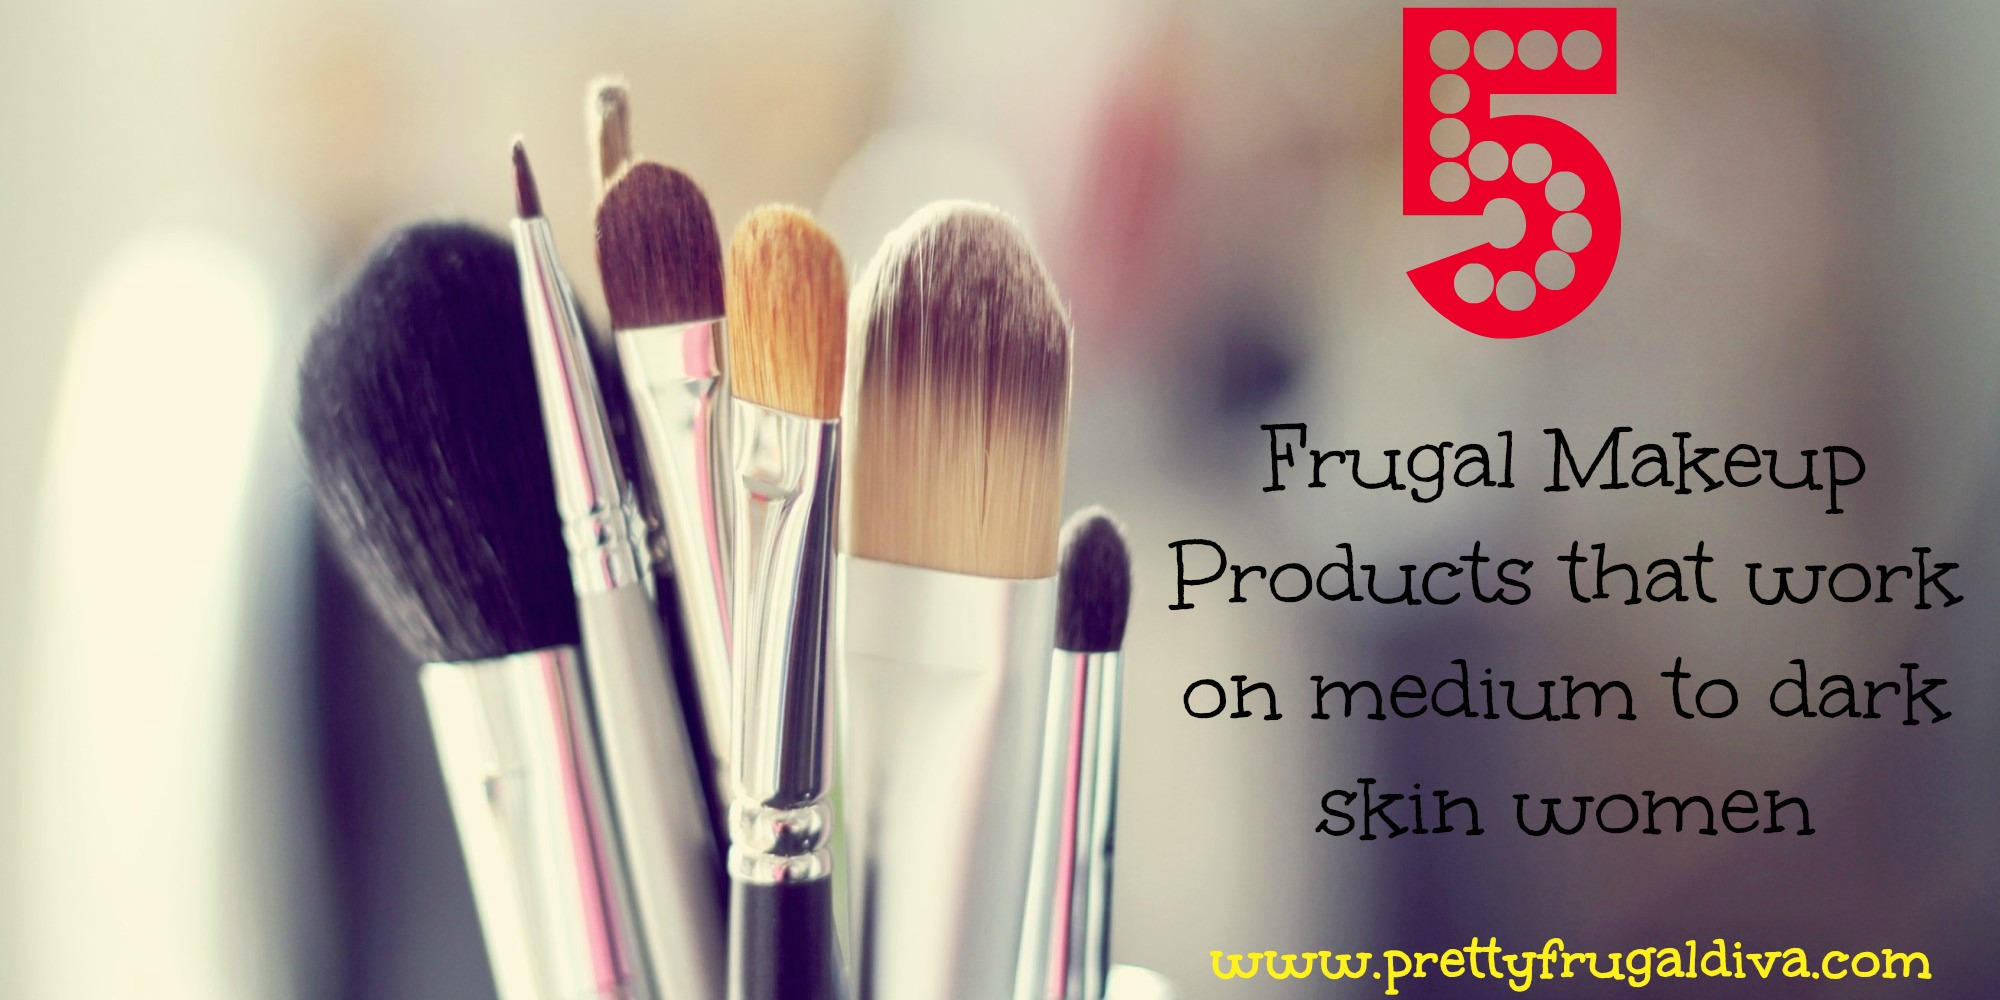 5 frugal makeup products that work on medium to dark skin women